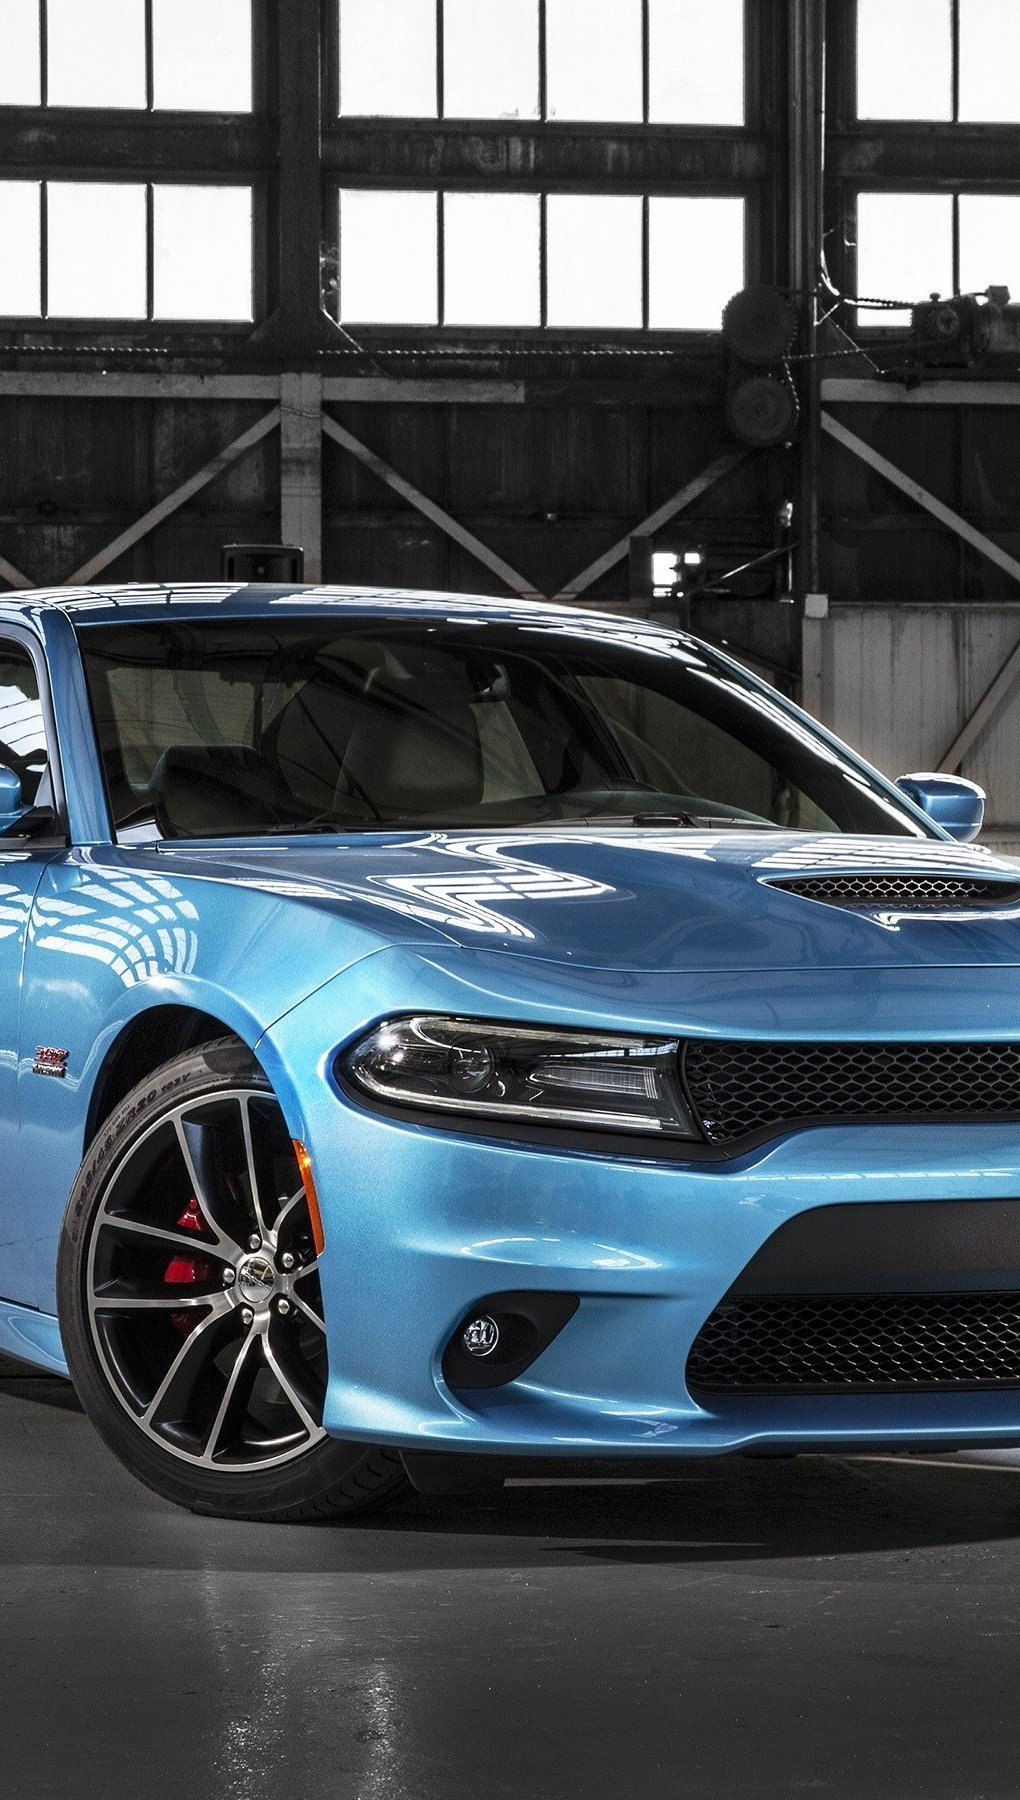 Wallpaper Dodge Charger RT Vertical